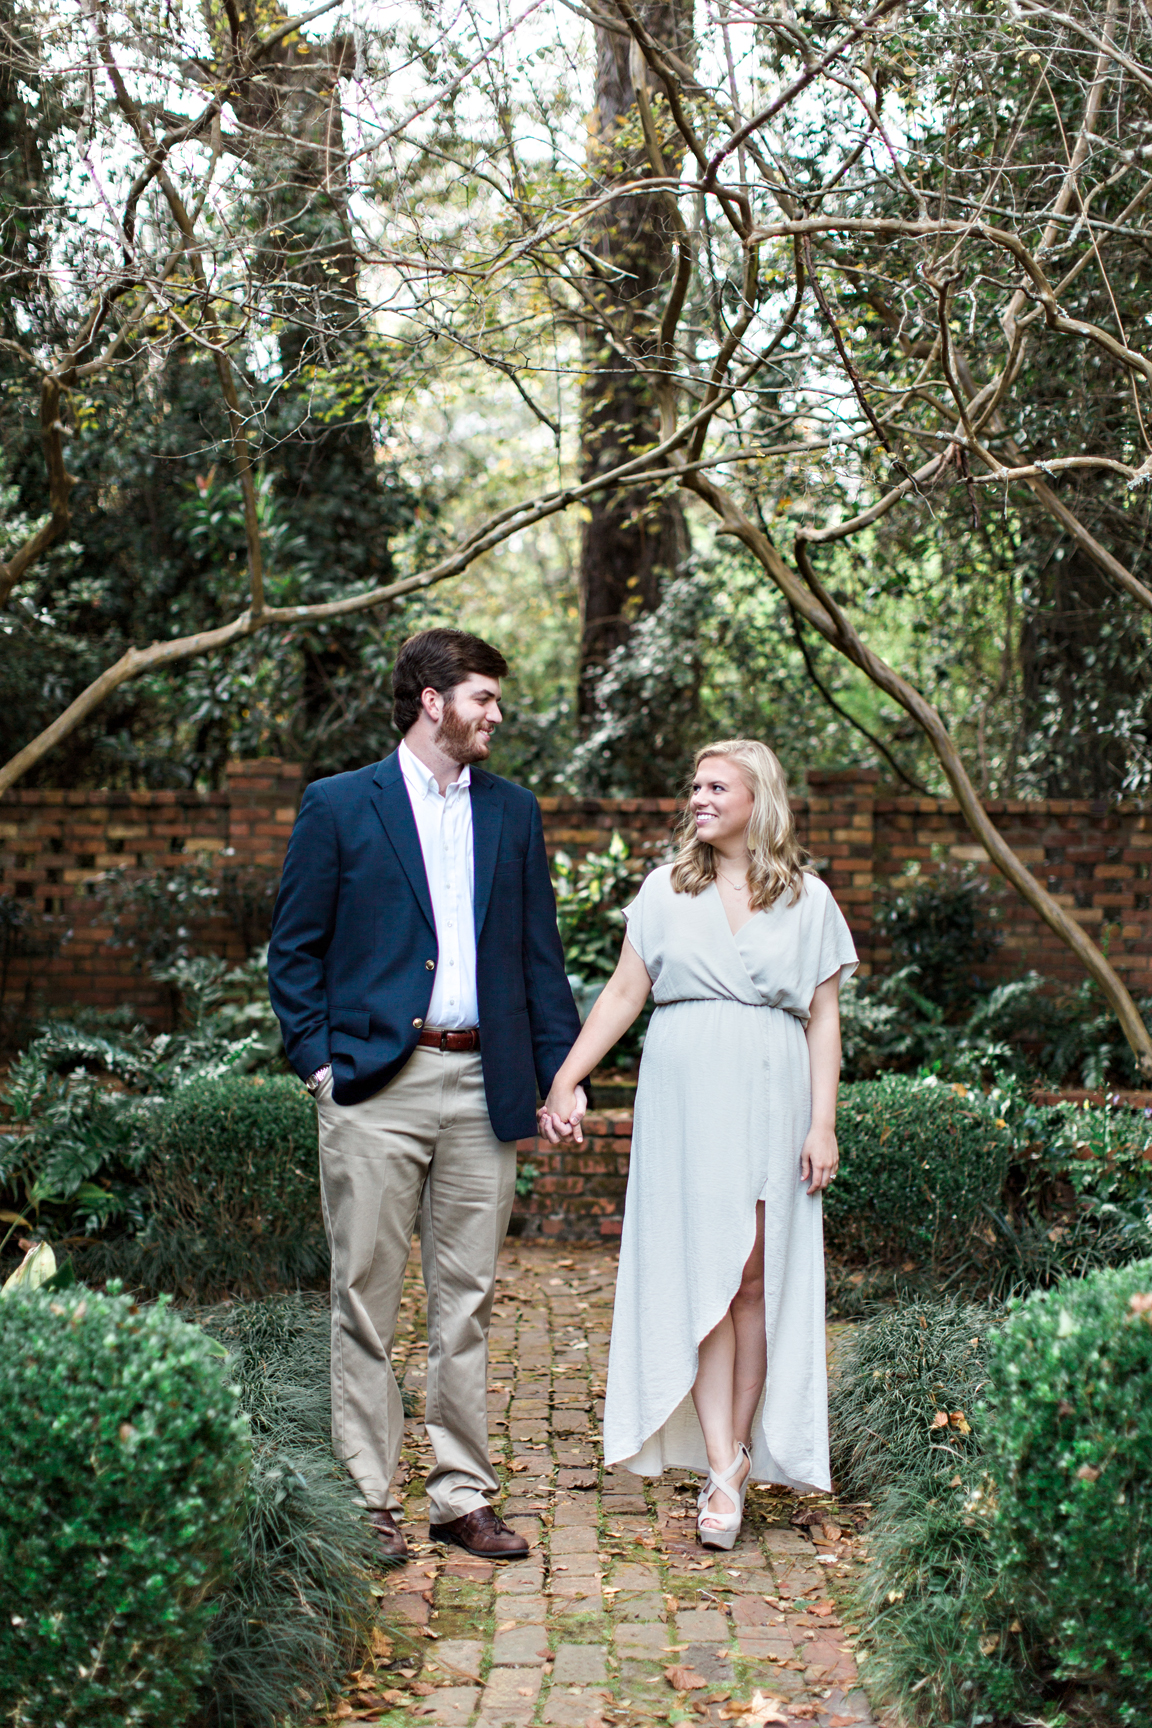 Alabama-Wedding-Photographers-Nick-Drollette-Amanda-Daniel-100.jpg